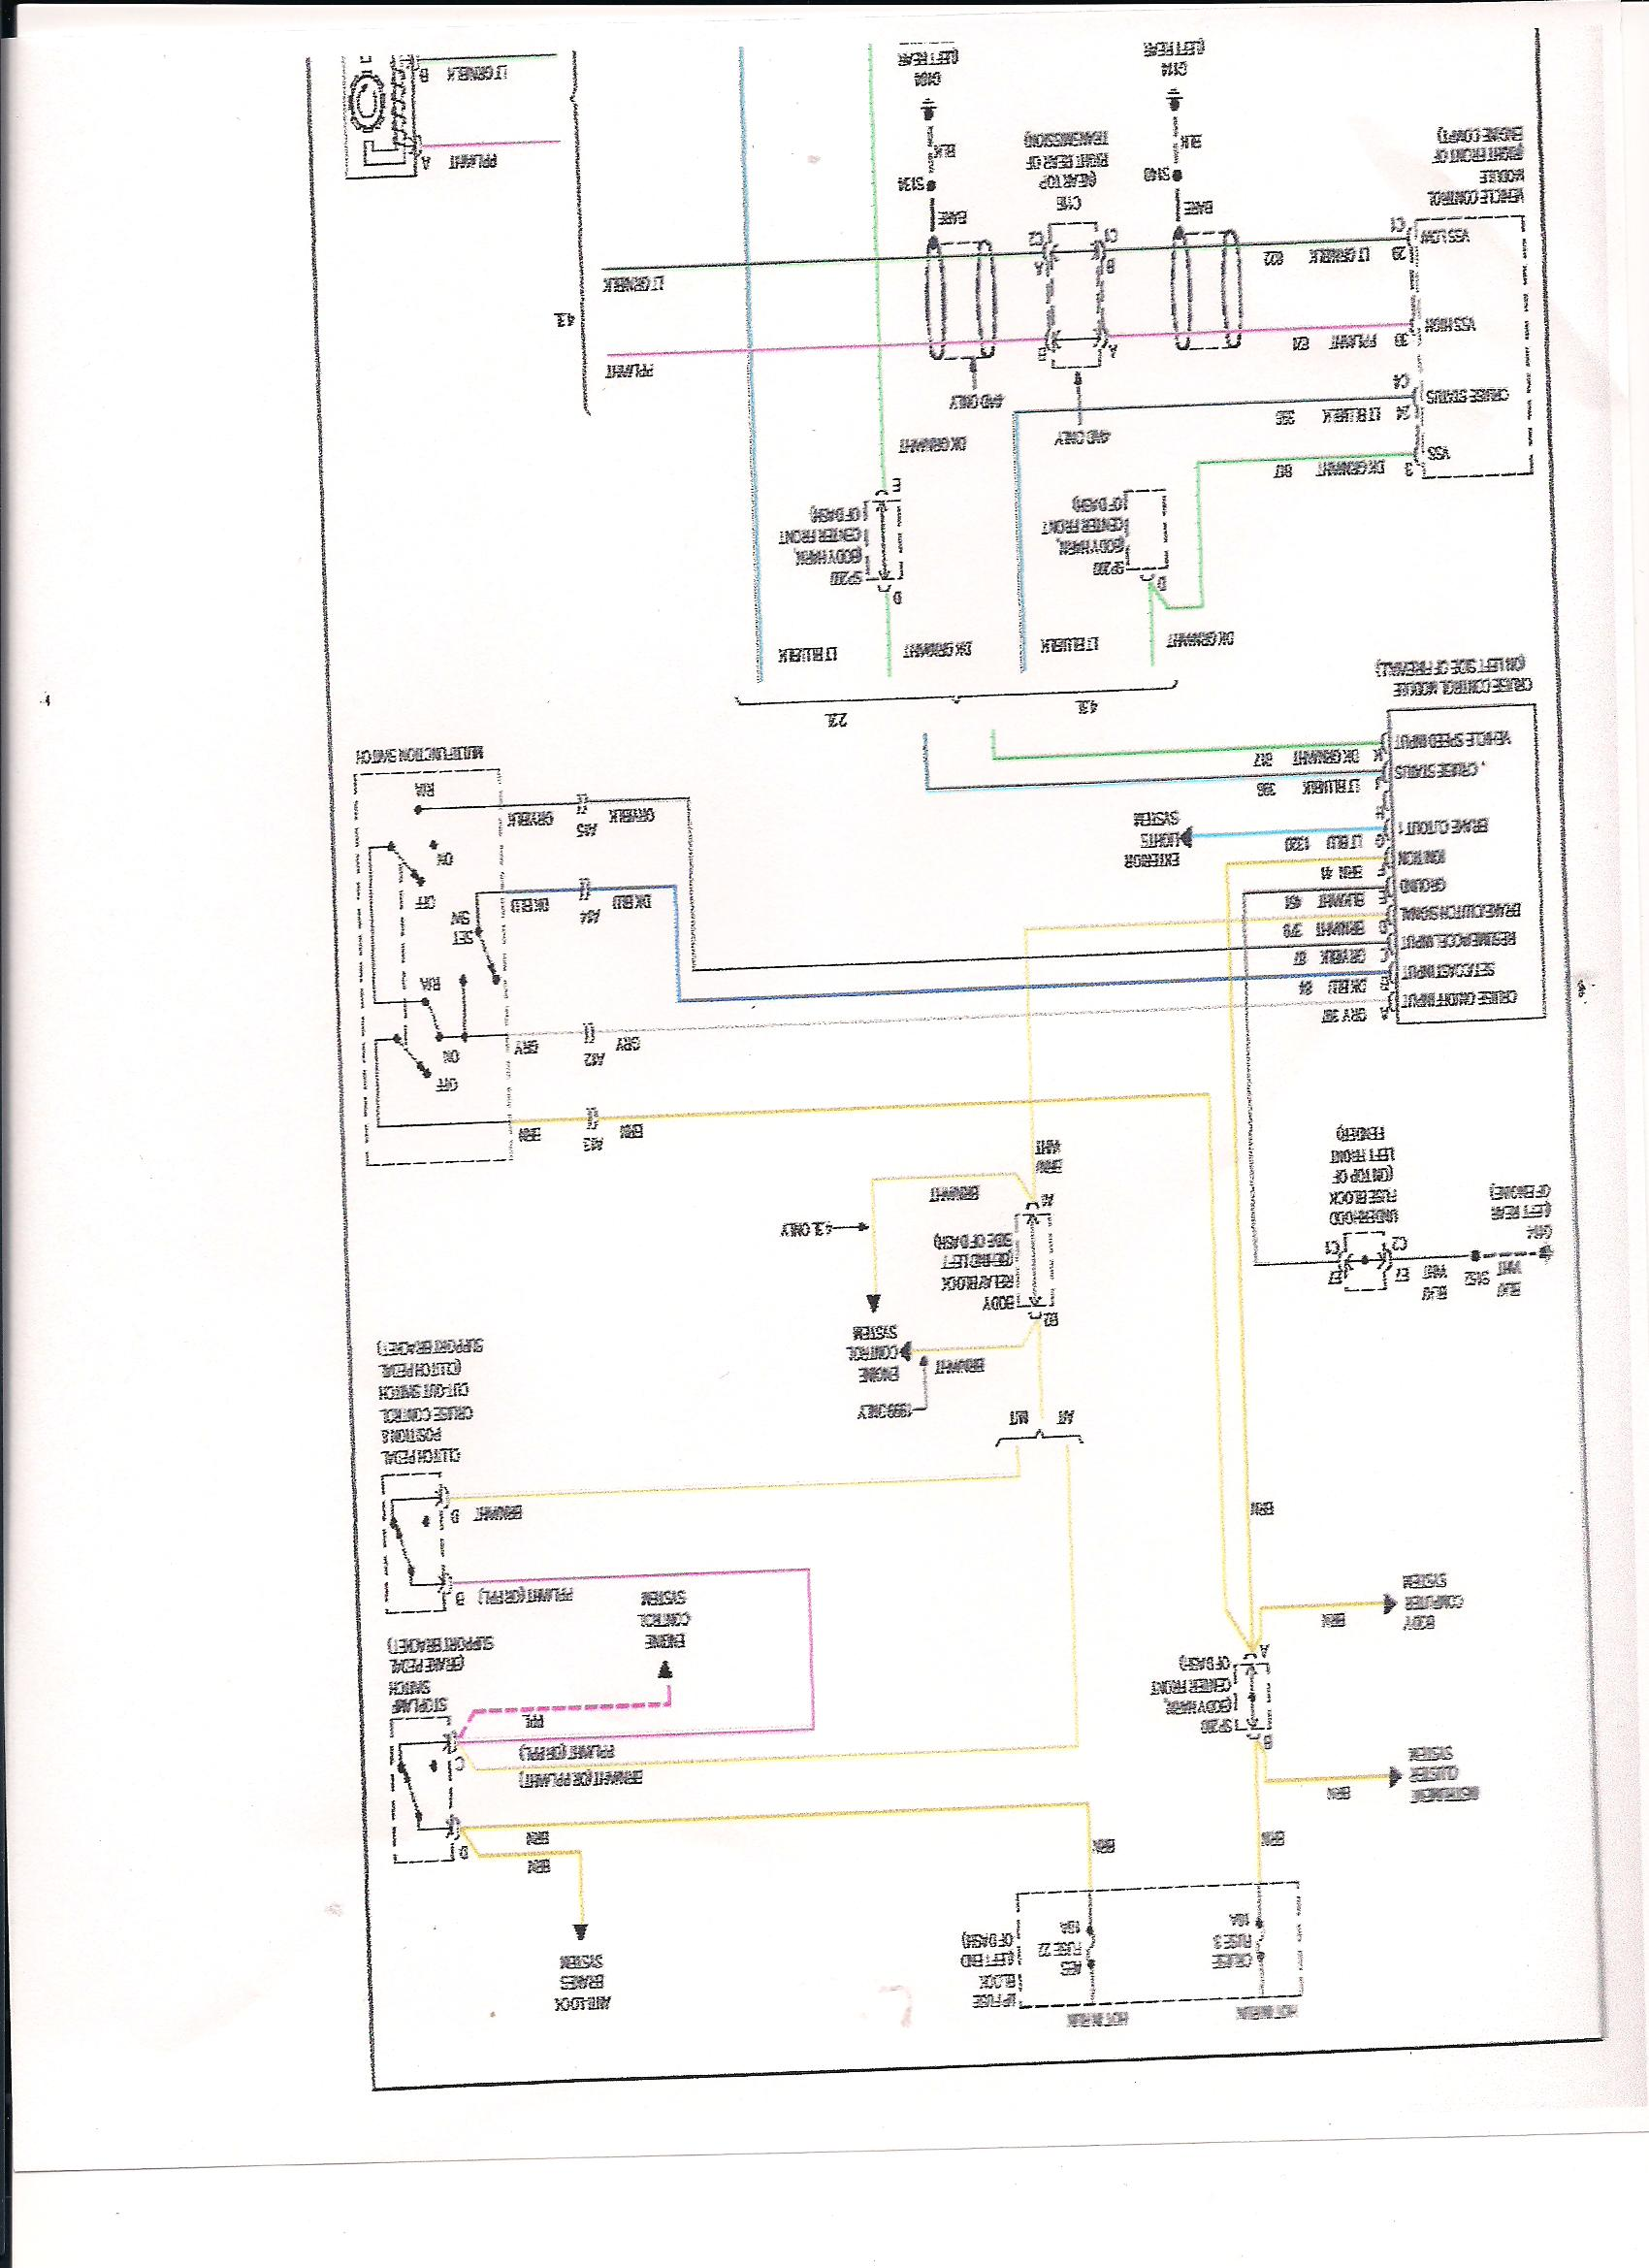 2000 chevy cruise wiring looking for vss and tach wires